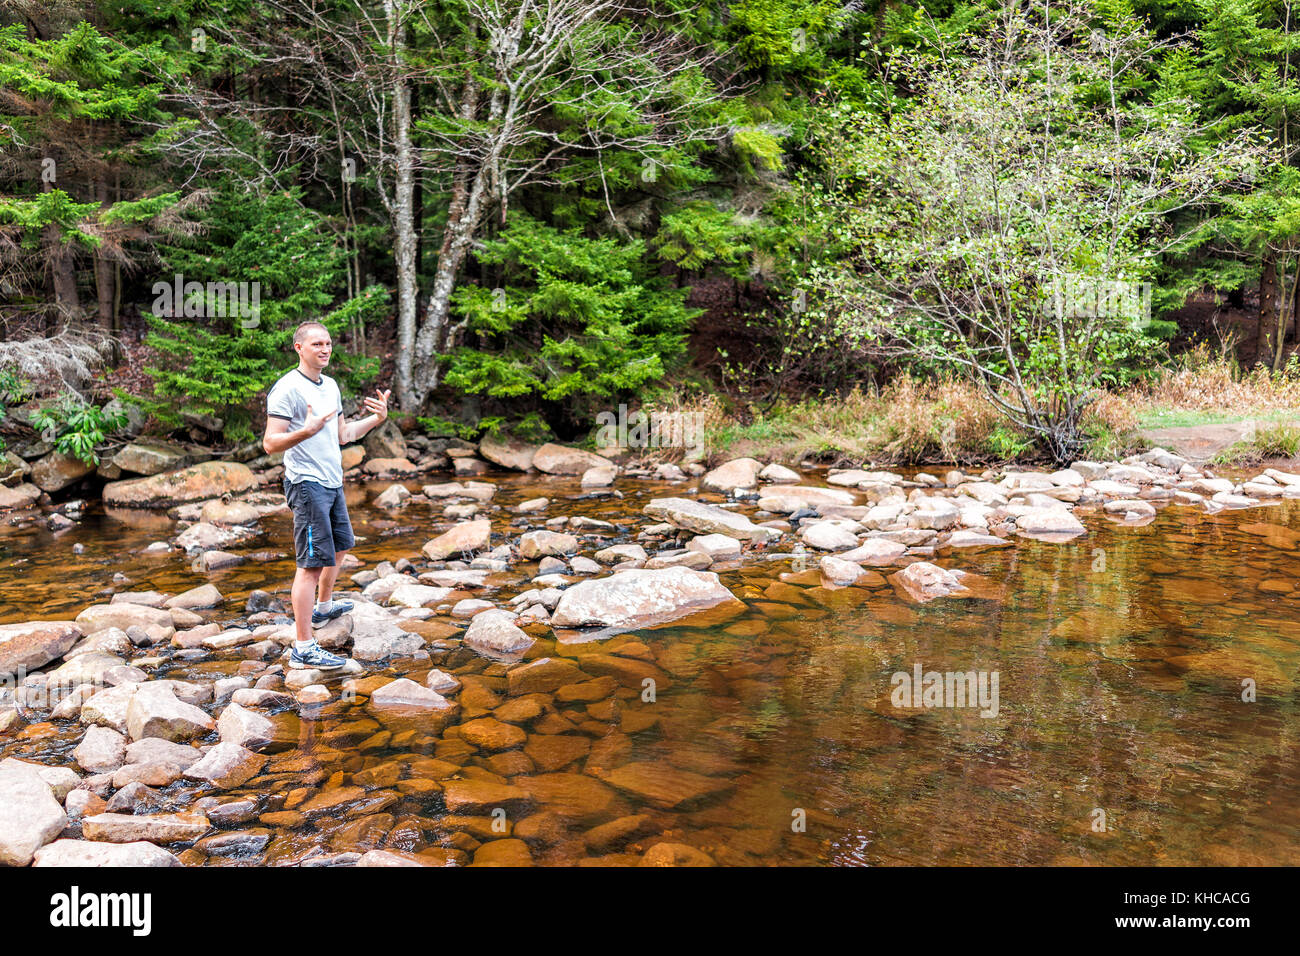 Young happy man enjoying nature breathing smiling on peaceful, calm Red Creek river in Dolly Sods, West Virginia - Stock Image